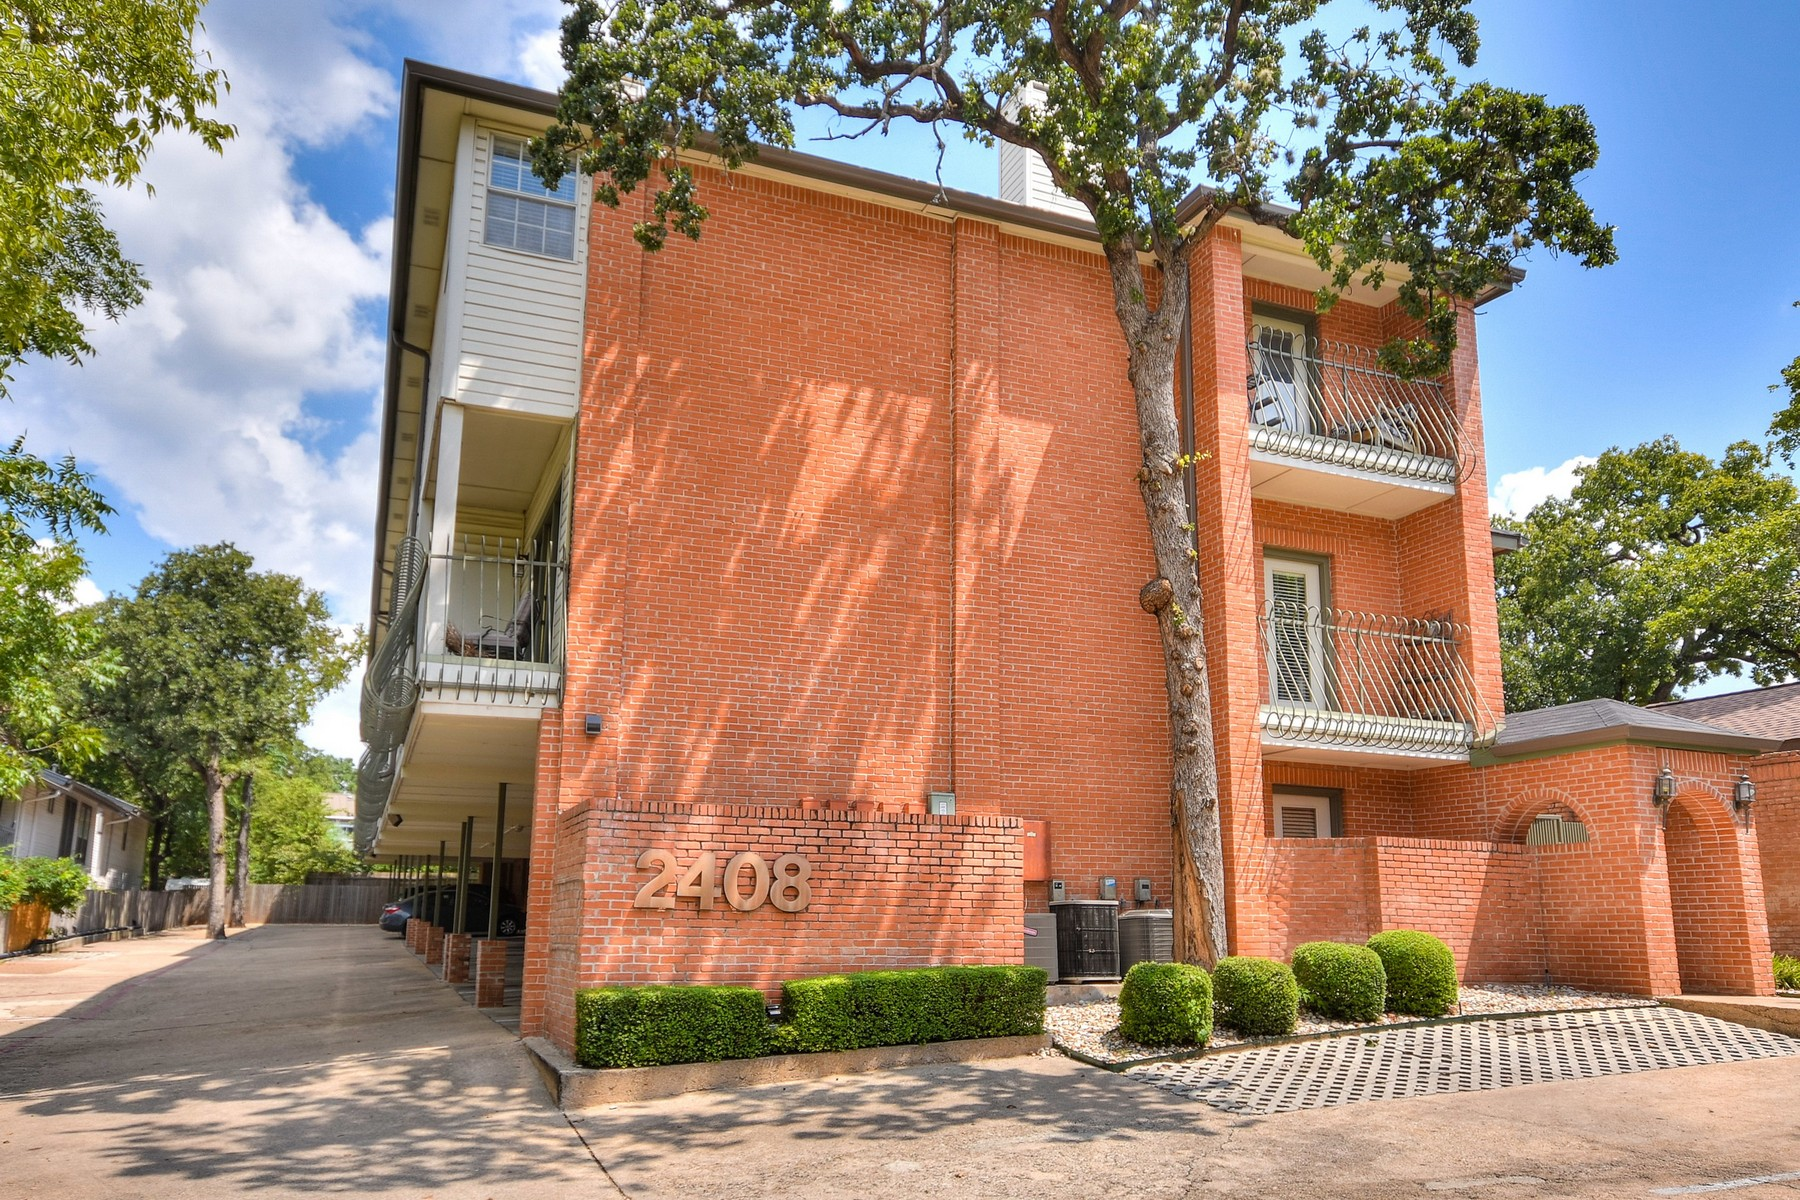 Condominium for Sale at Updated Tarrytown Condo 2408 Enfield Rd 214 Austin, Texas 78703 United States